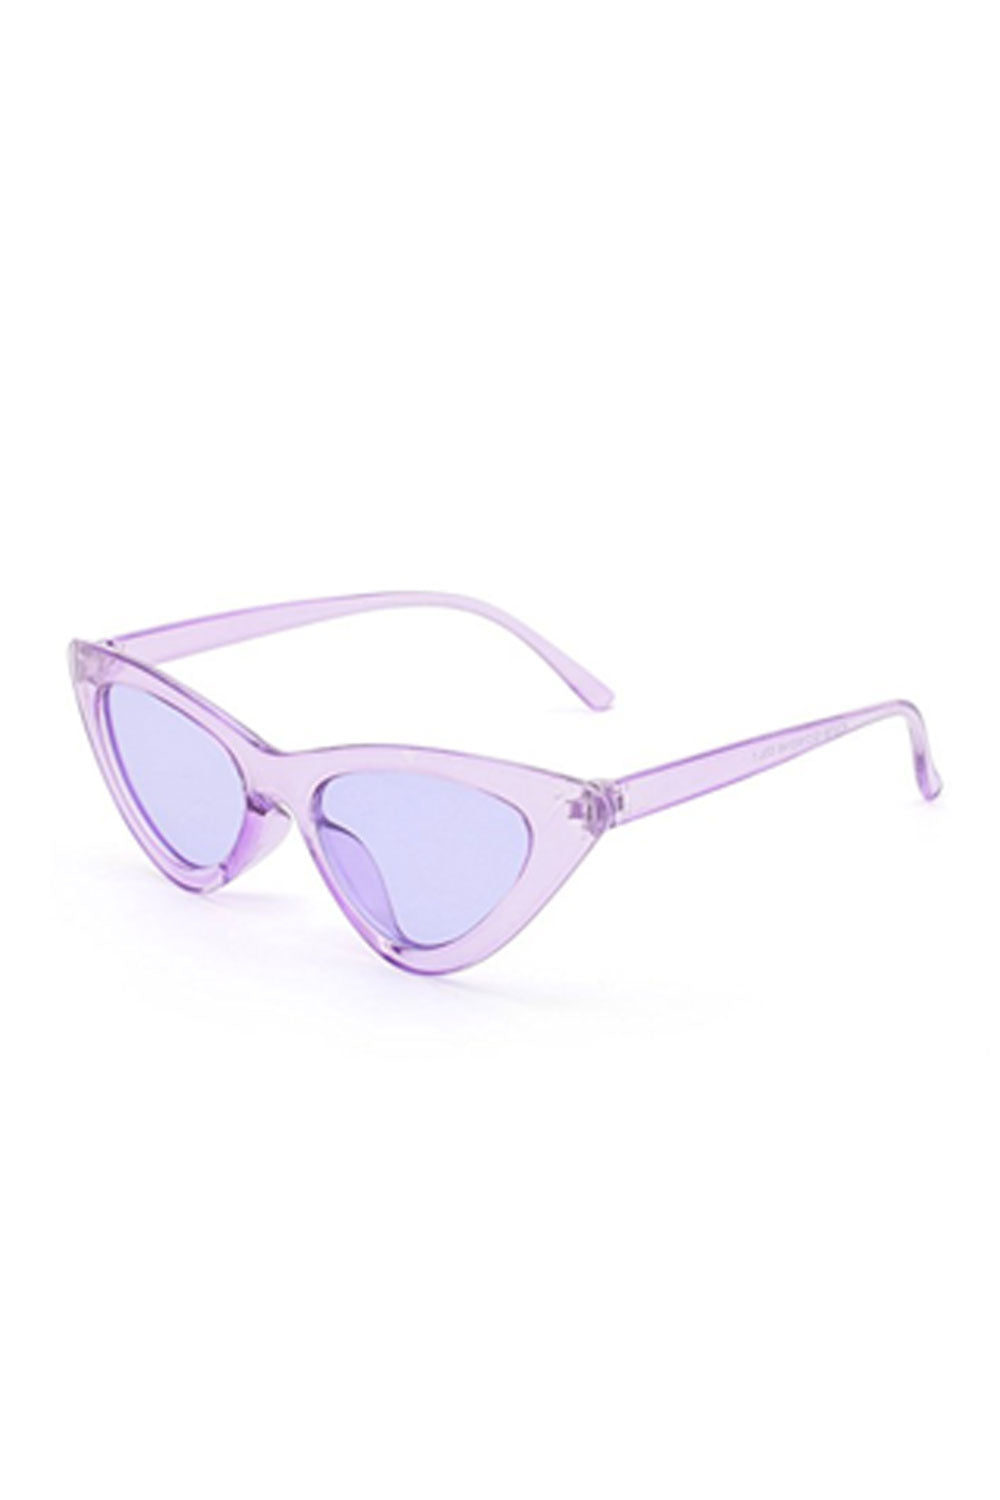 Retro Cat Eye Sunglasses - Violet